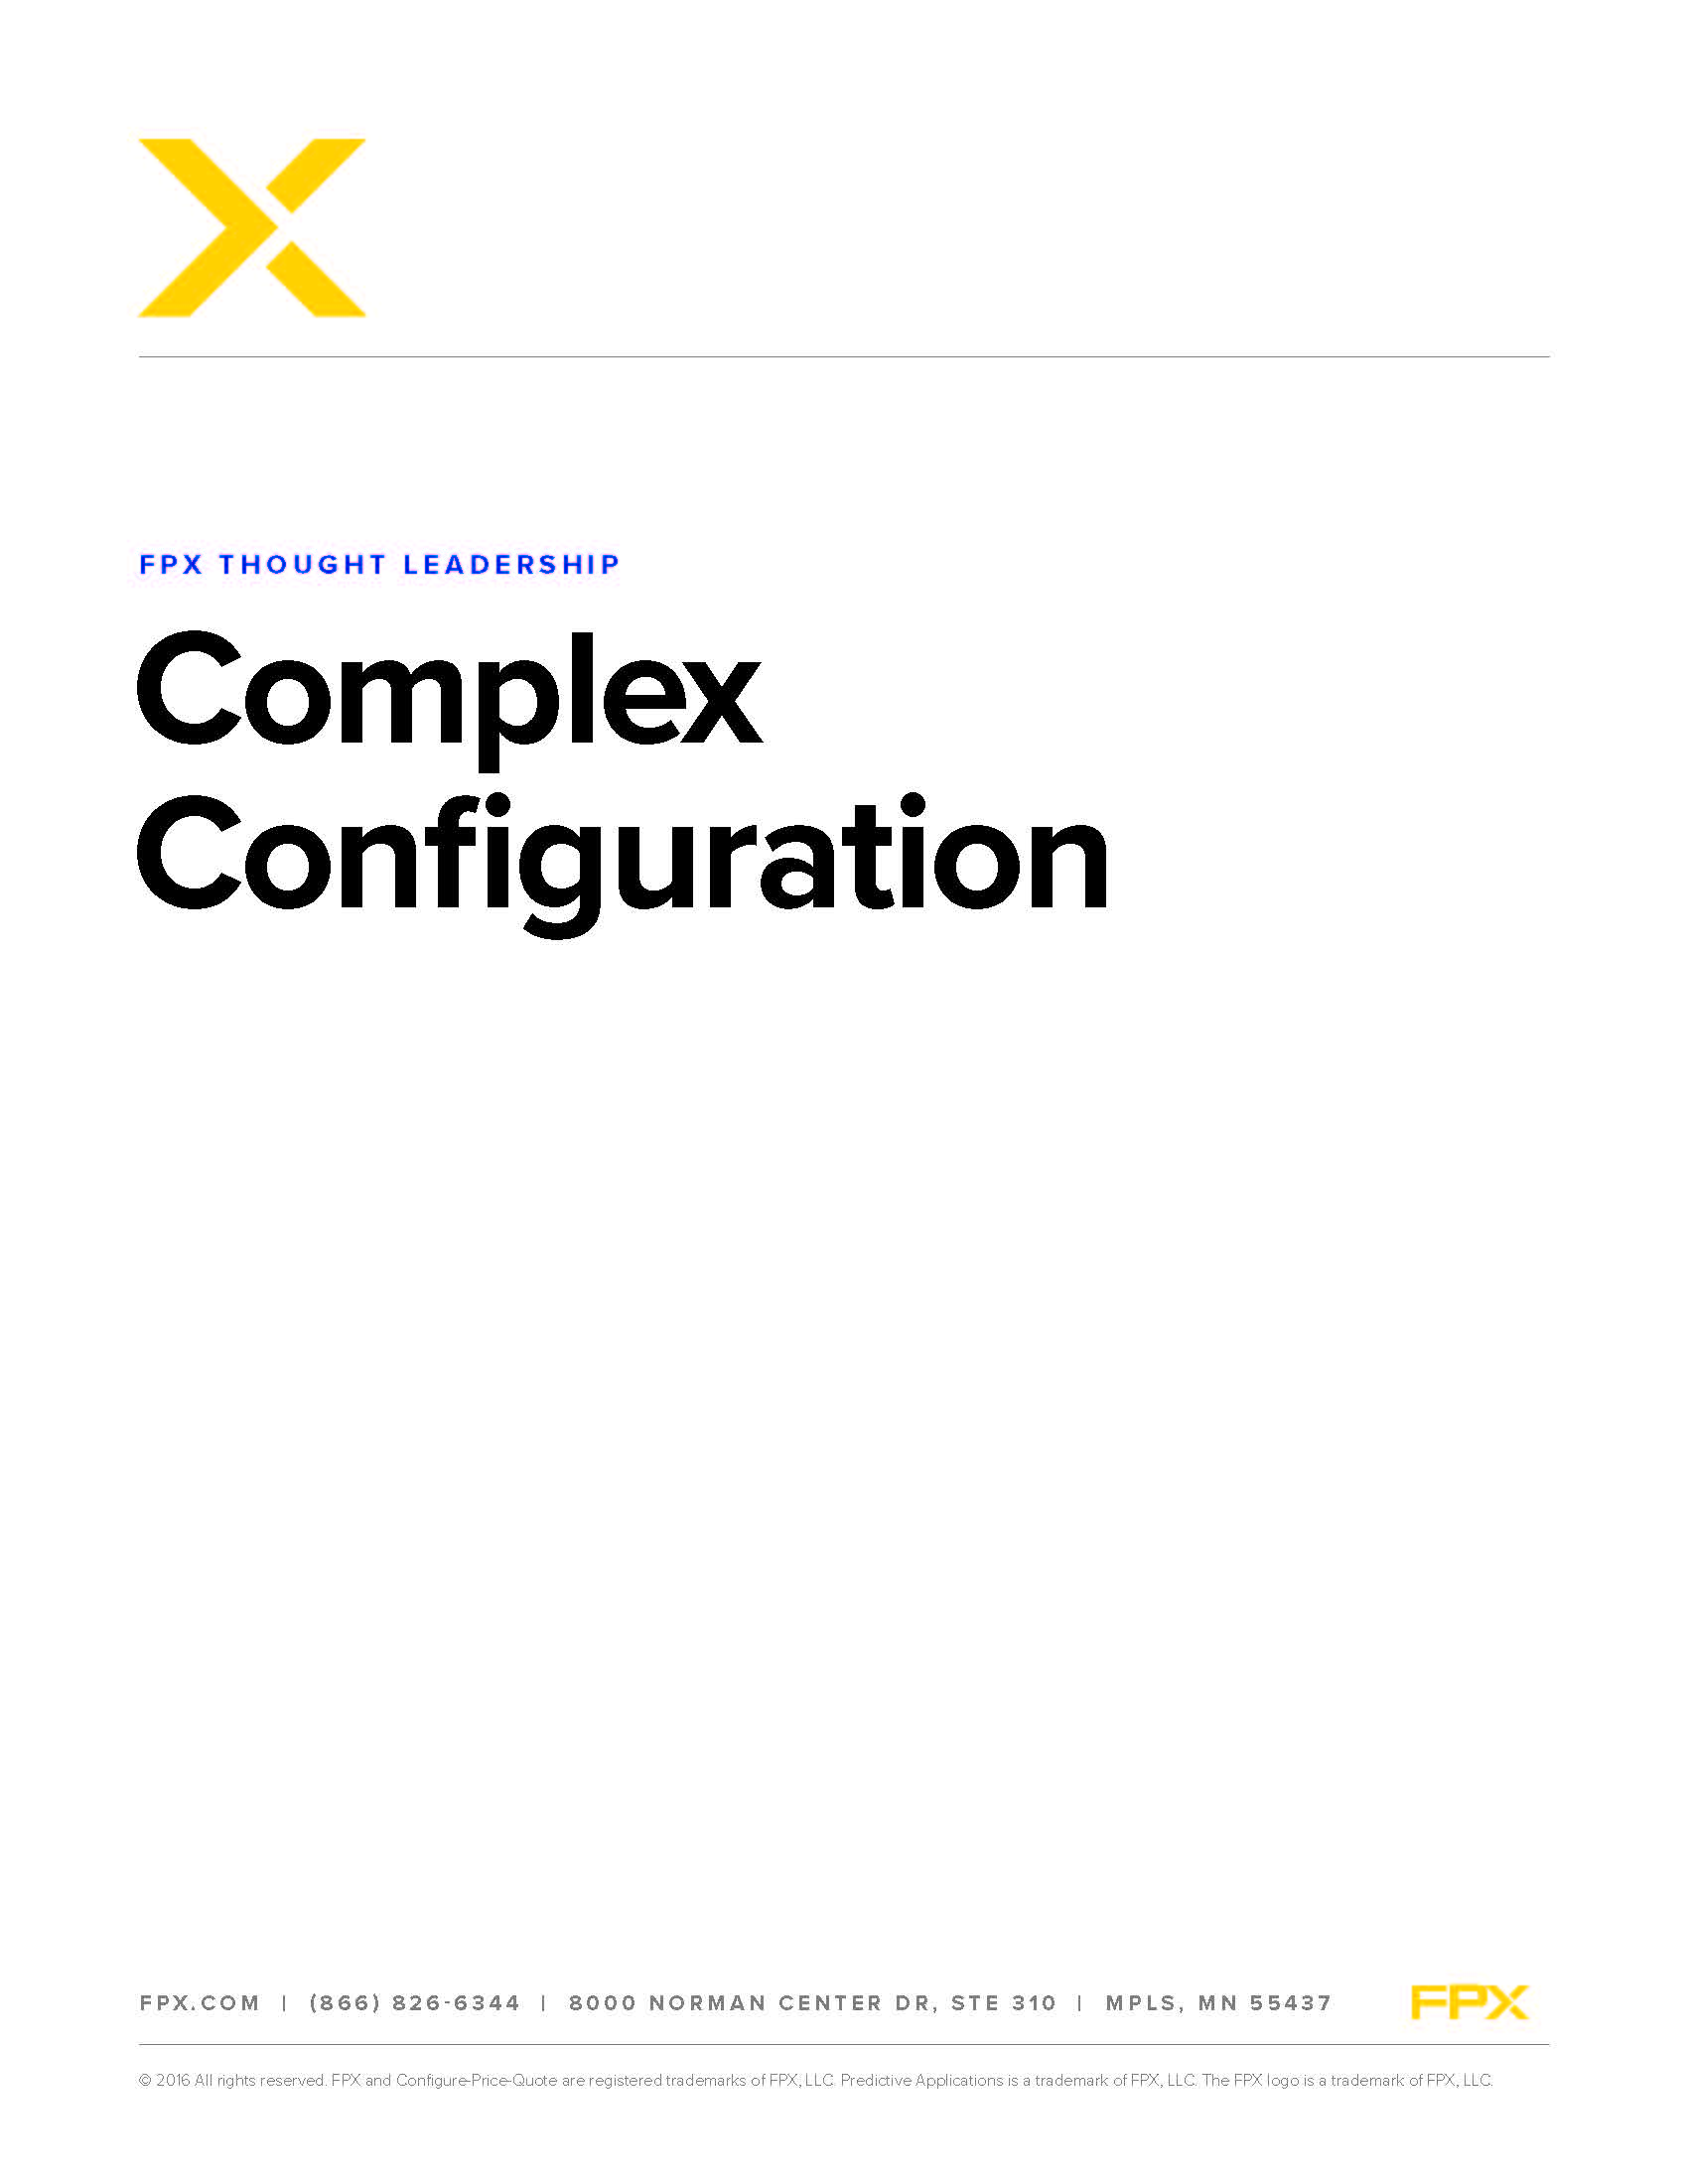 Download the Complex Configuration white paper